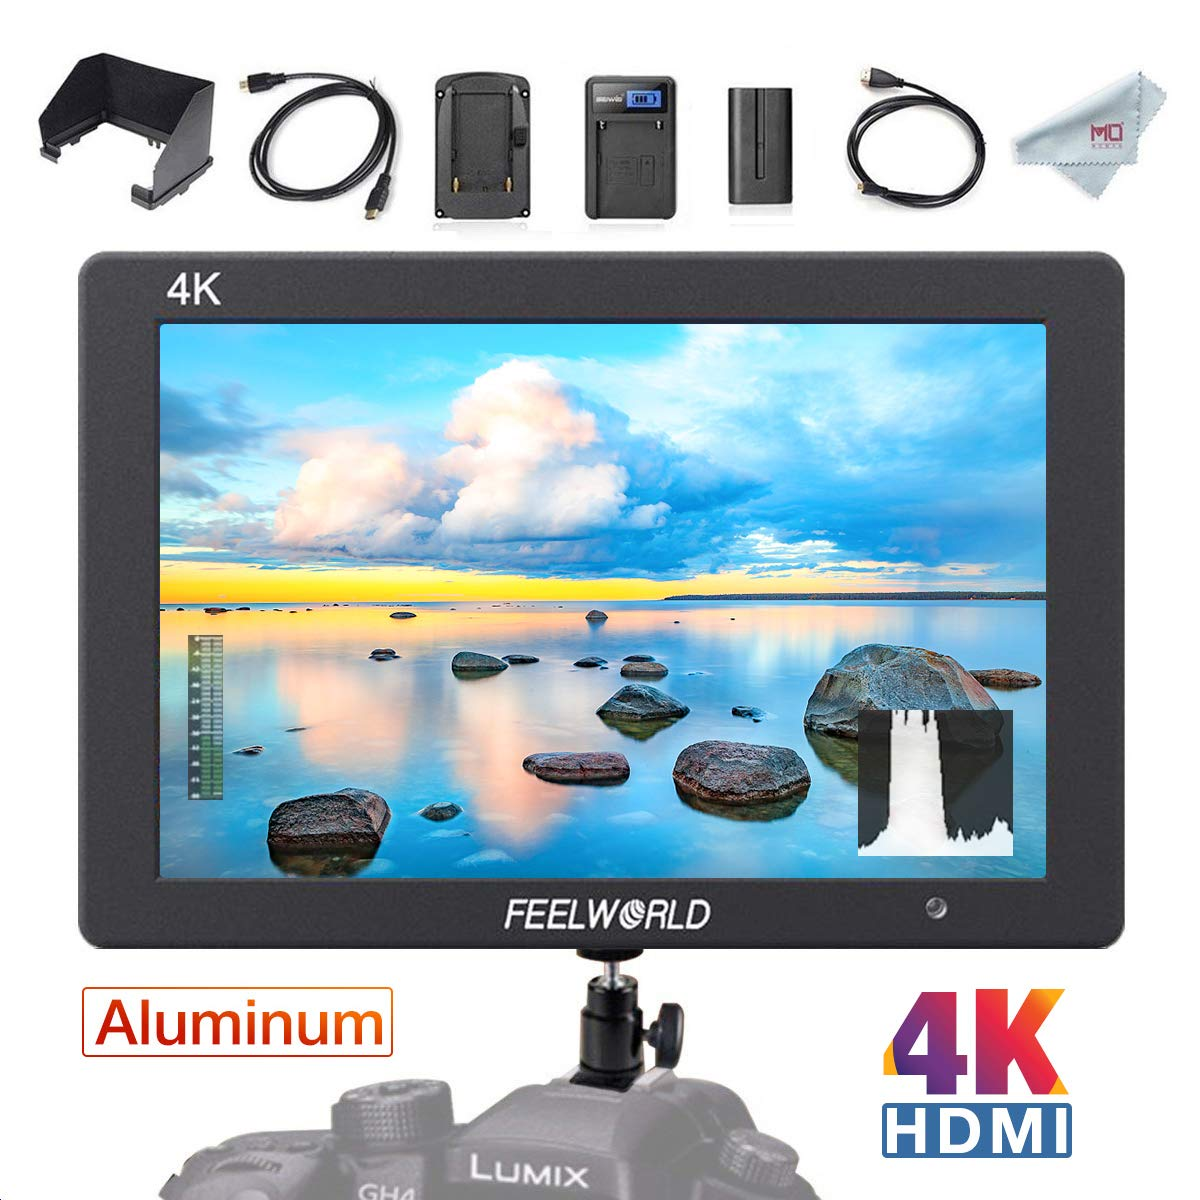 FEELWORLD T7 7 Inch 4K HDMI Camera Field Monitor and Battery Kit, Full HD 1920 x 1200 IPS Aluminum Video Assist for DSLR by FEELWORLD